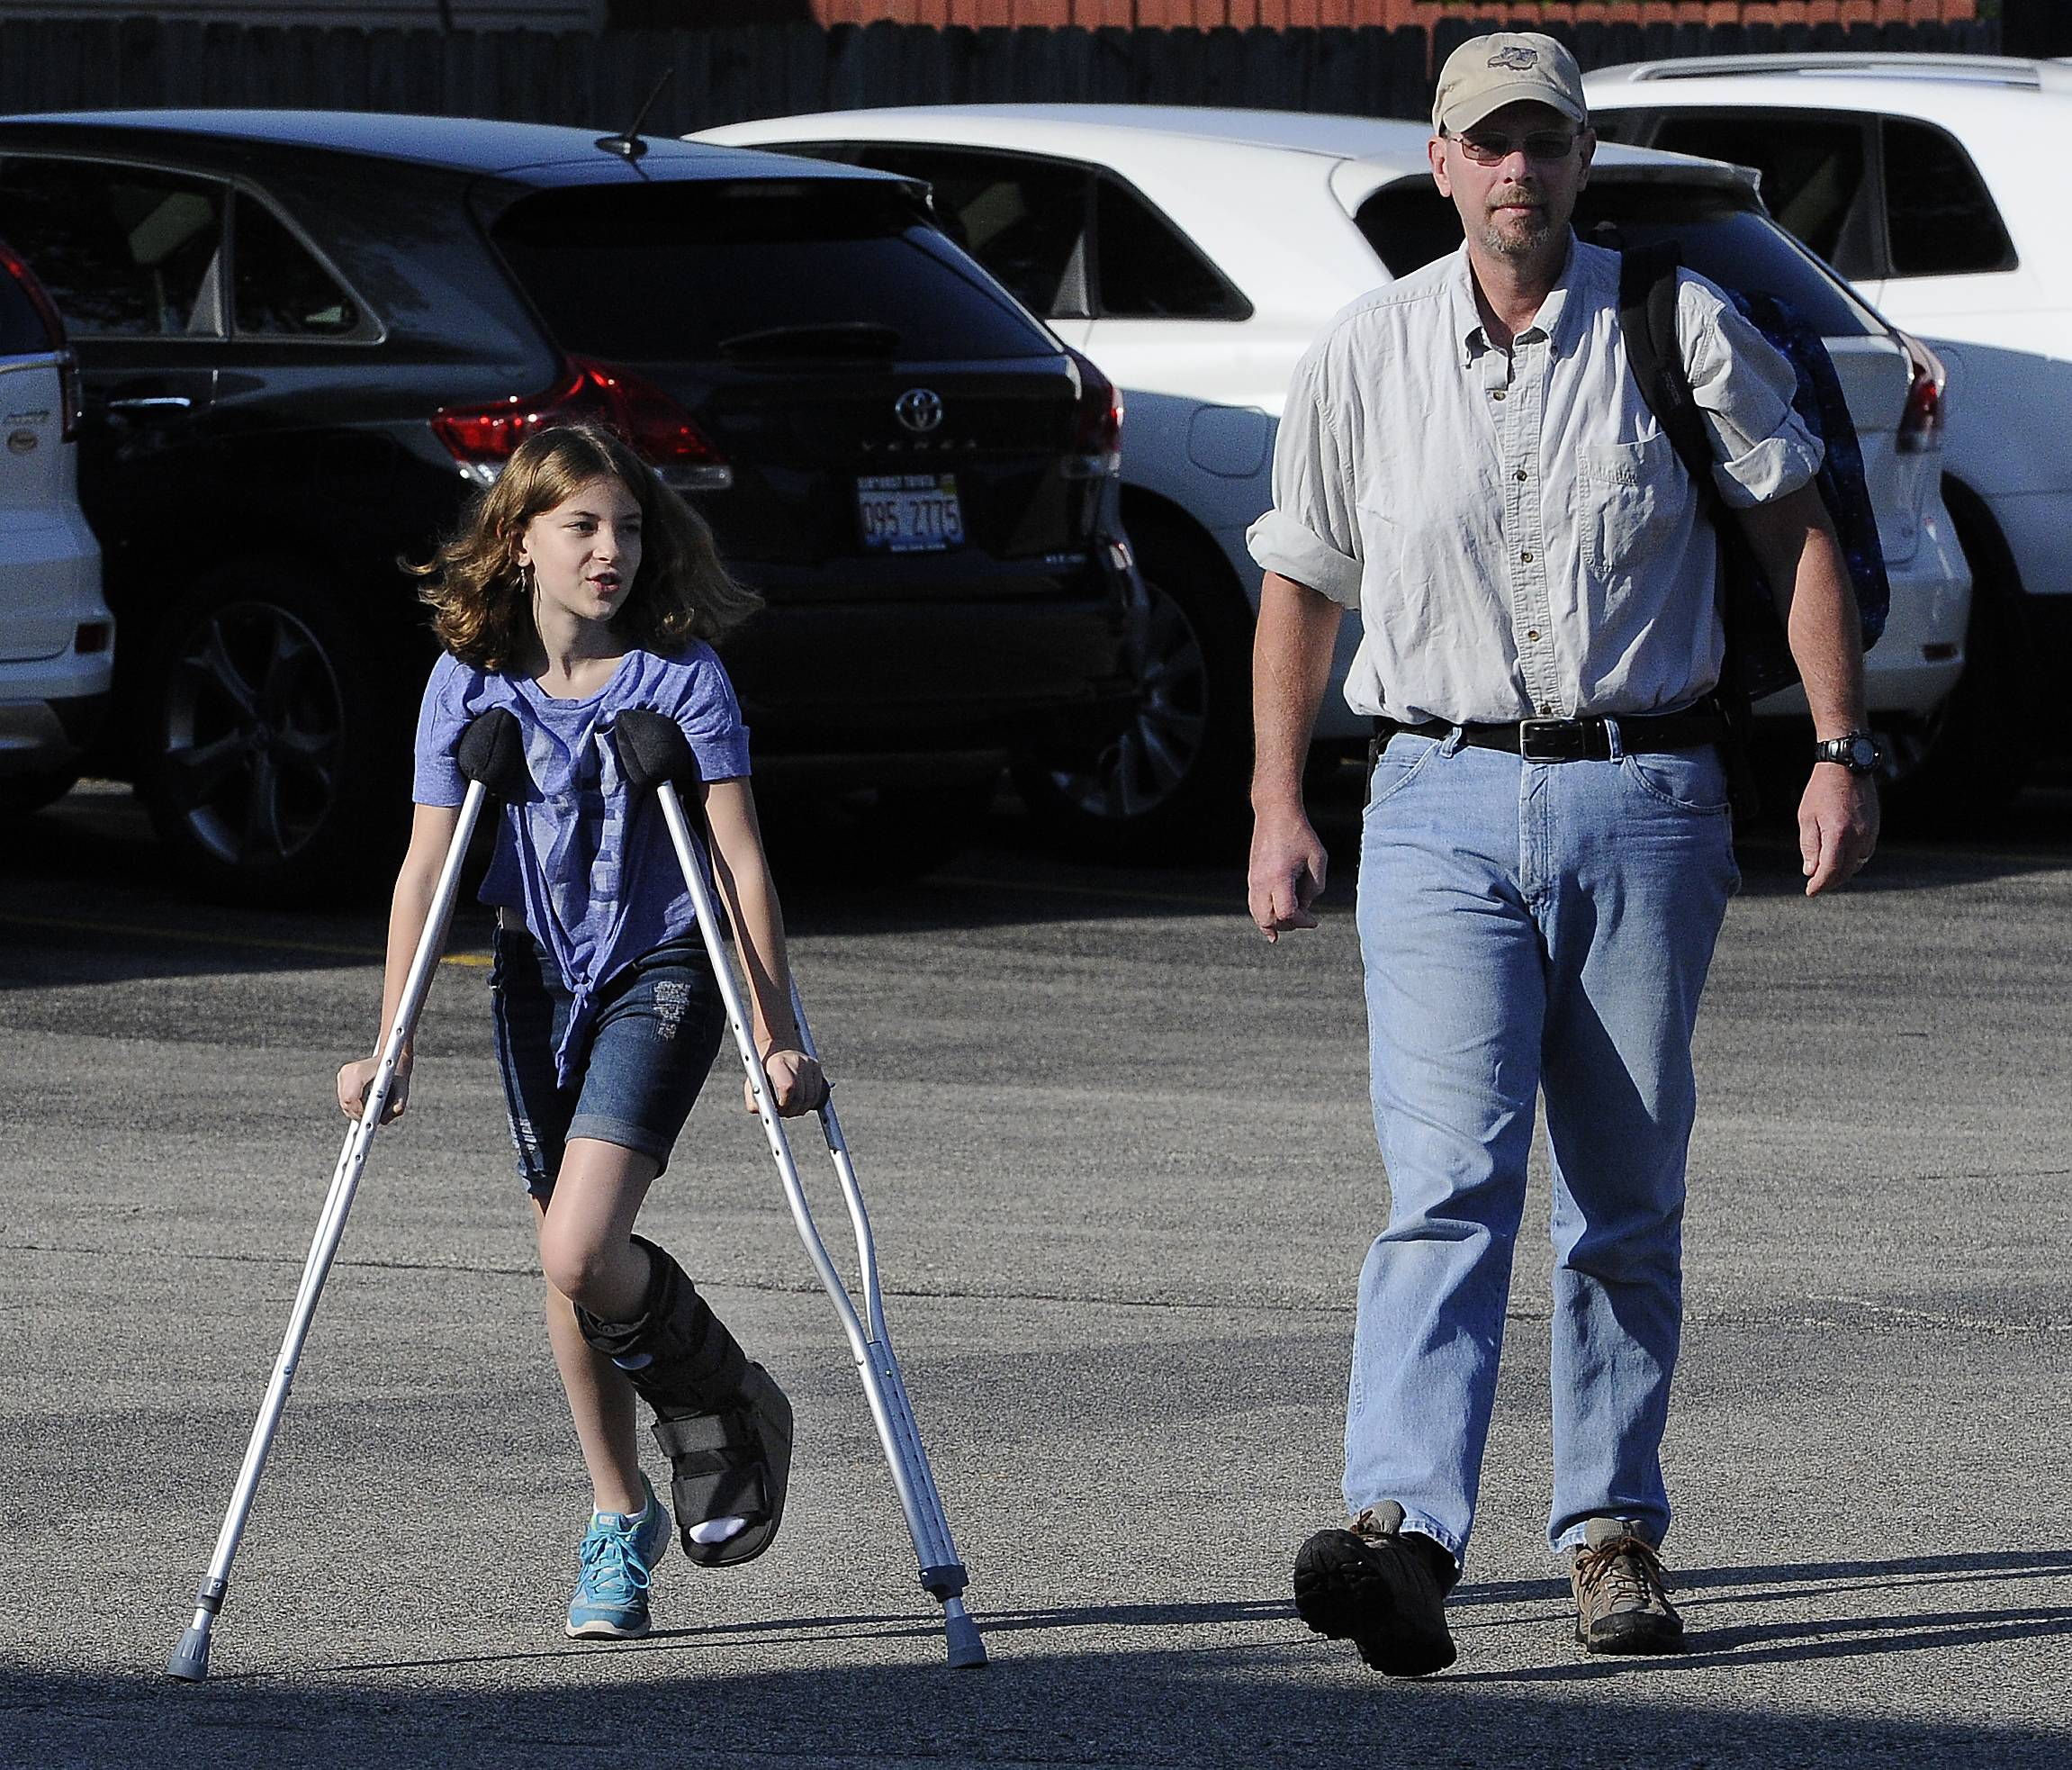 It was a tough way to greet the first day of school for Gwenyth Logan, 10, of Buffalo Grove as she has to deal with a stress fracture, but with the help of her dad, George, she makes it to her first day at Longfellow Elementary School in Buffalo Grove.